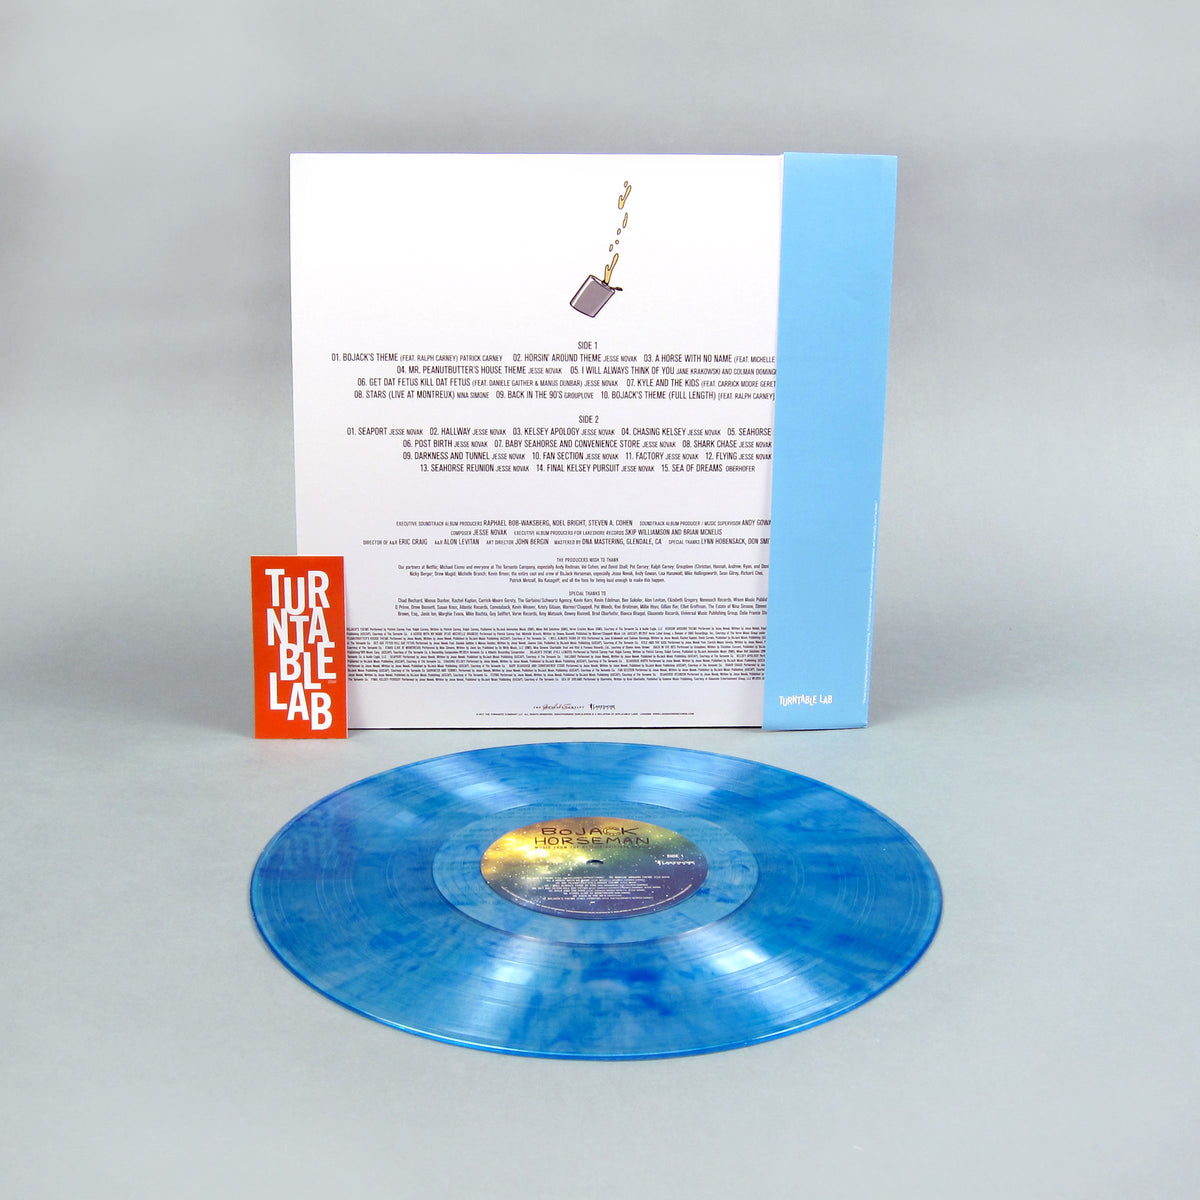 Bojack Horseman: Music From The Netflix Original Series (Colored Vinyl) Vinyl LP - Turntable Lab Exclusive